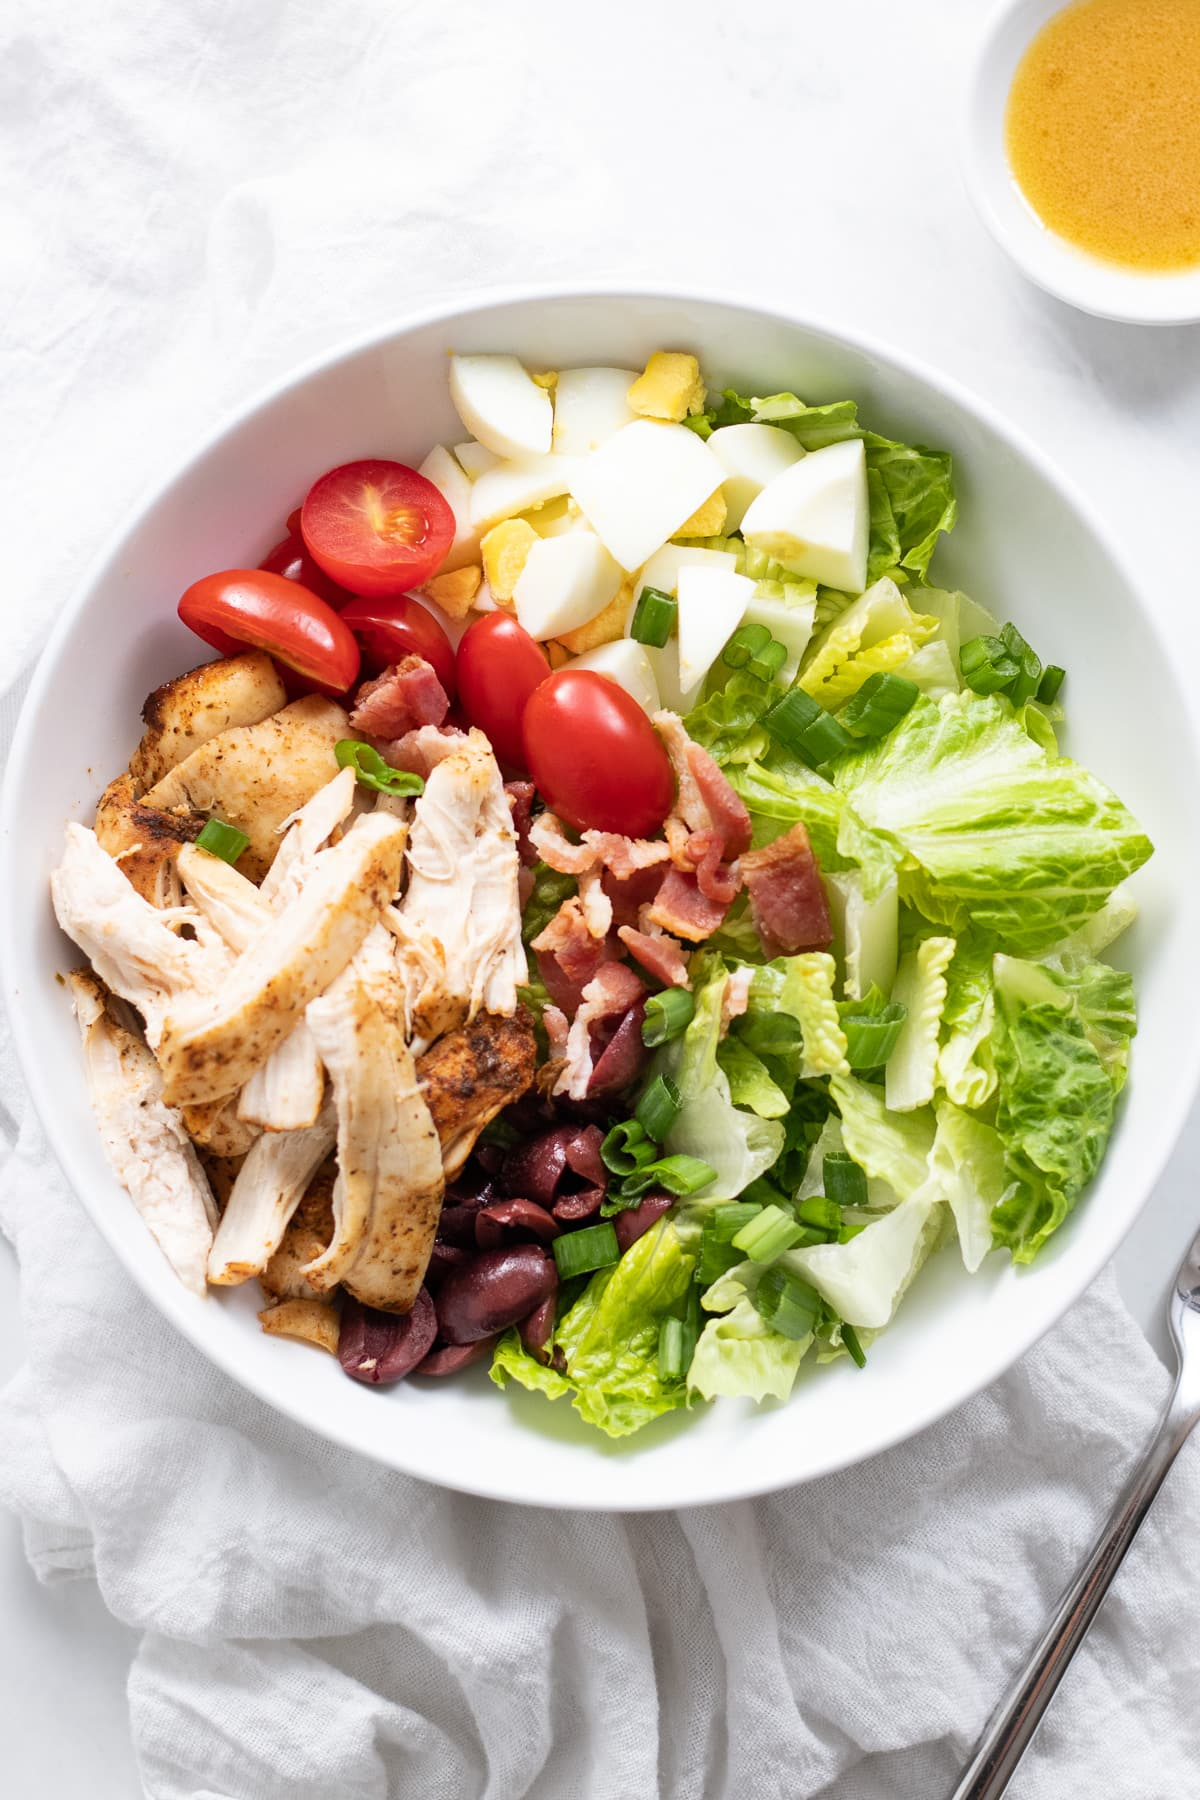 A shallow bowl filled with lettuce, chicken, bacon crumbles, diced hard-boiled egg, cherry tomatoes, and kalamata olives.